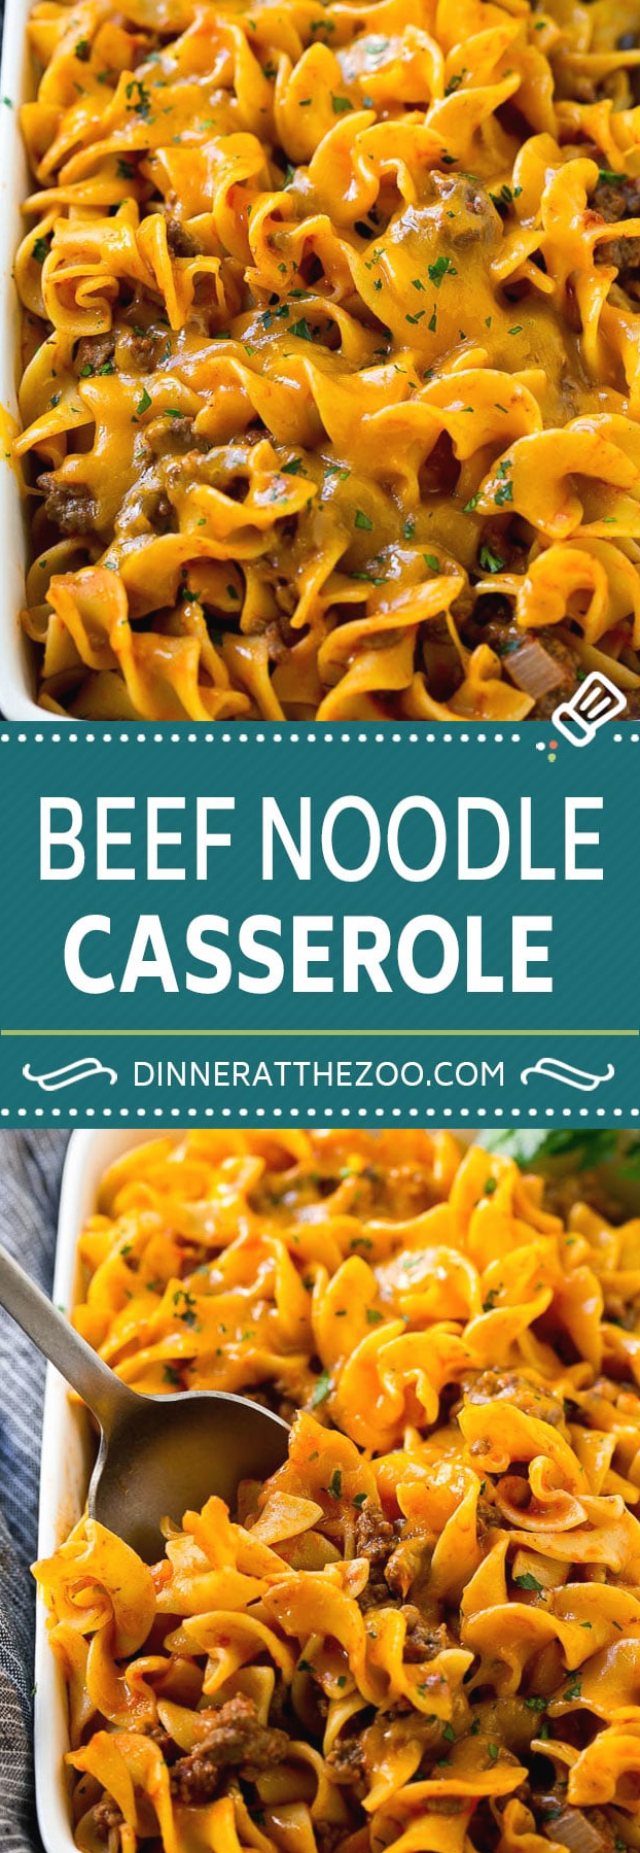 Beef Noodle Casserole Recipe Ground Beef Casserole Beef And Egg Noodles Rice Dinner Recipes Fish In 2020 Beef Recipes Easy Beef Dinner Beef Recipes For Dinner